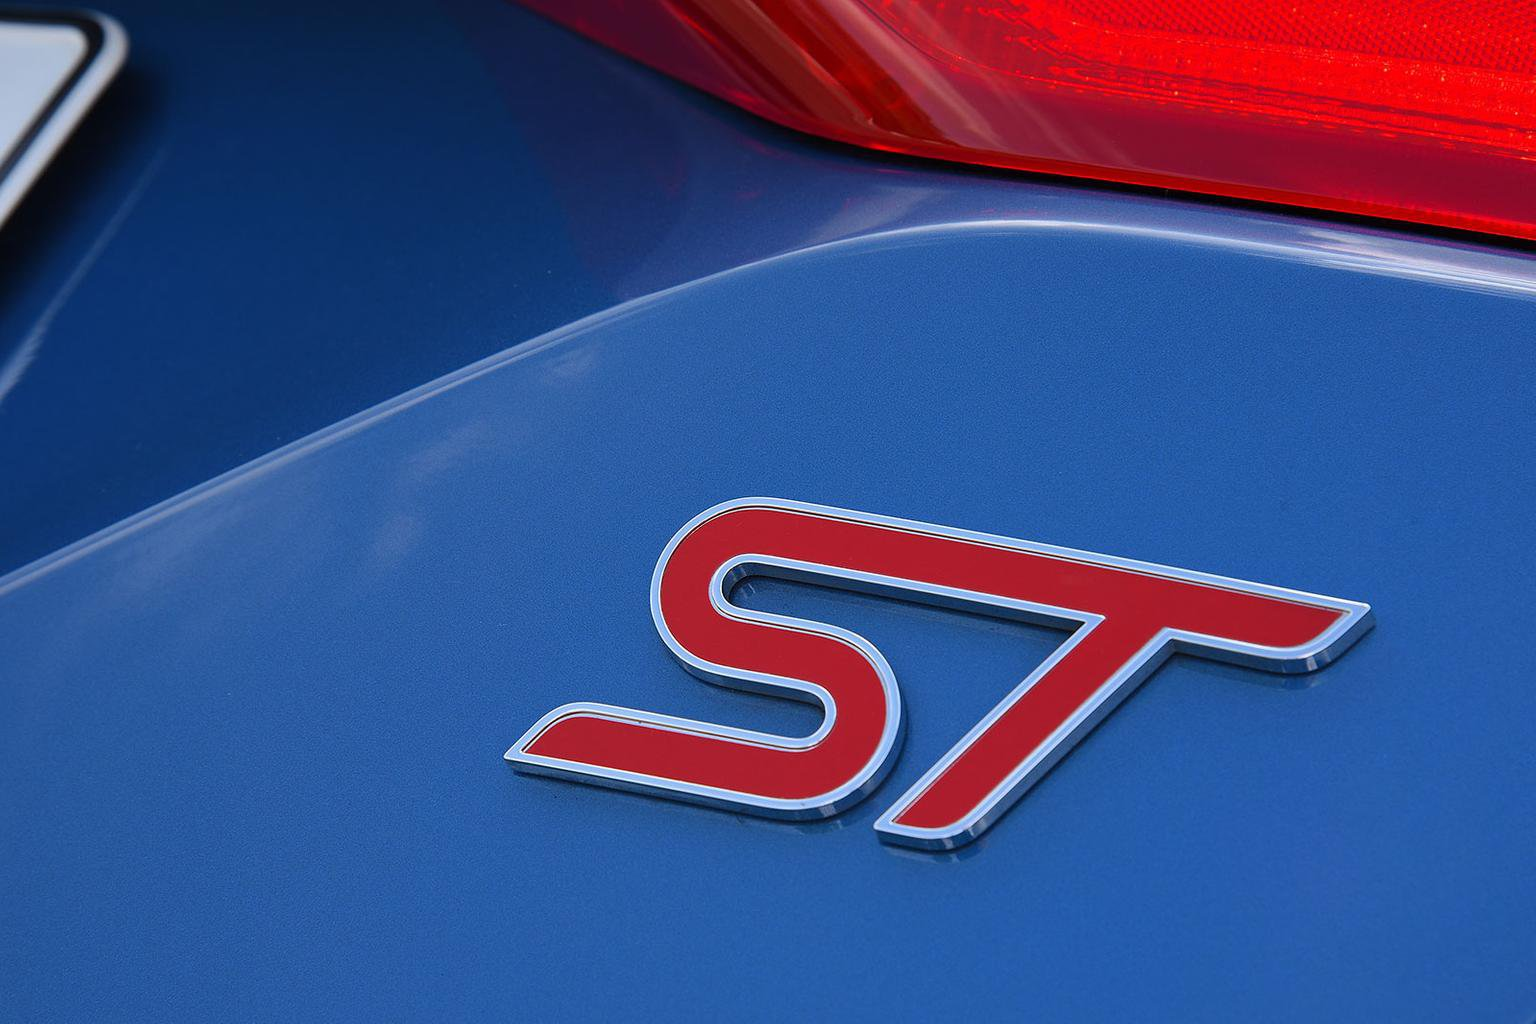 Ford Fiesta ST 2021 badge